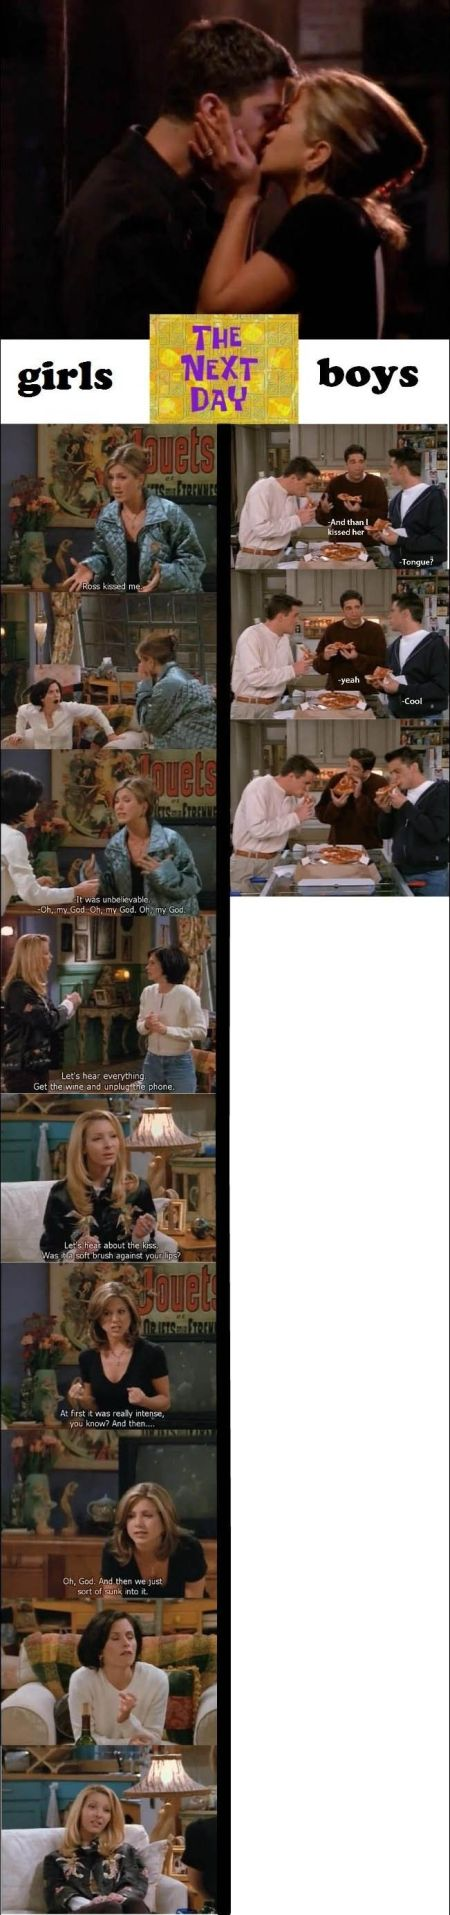 friends compare men and women after kiss